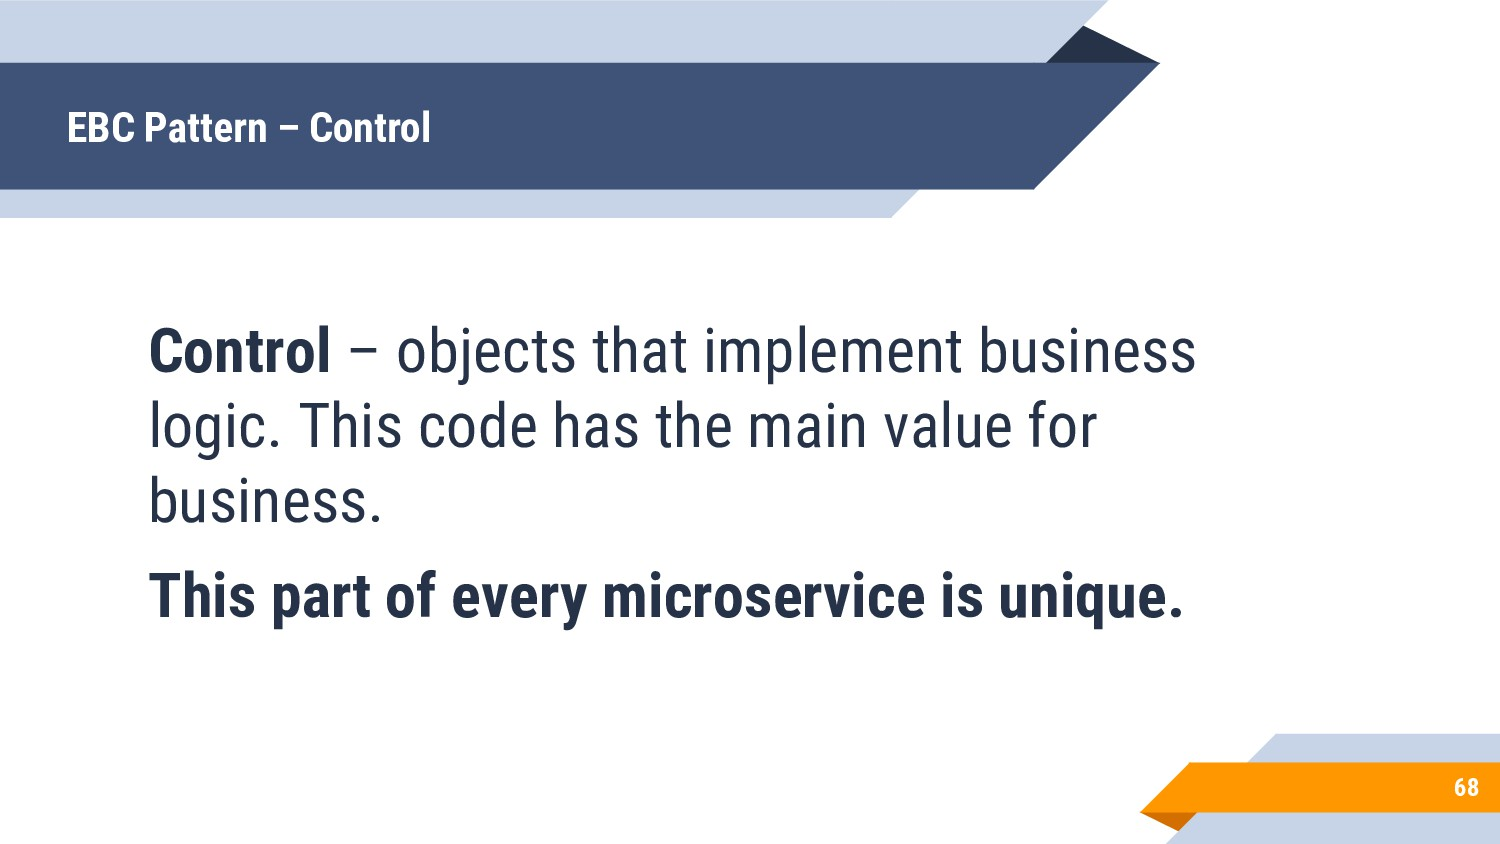 Control – objects that implement business logic...